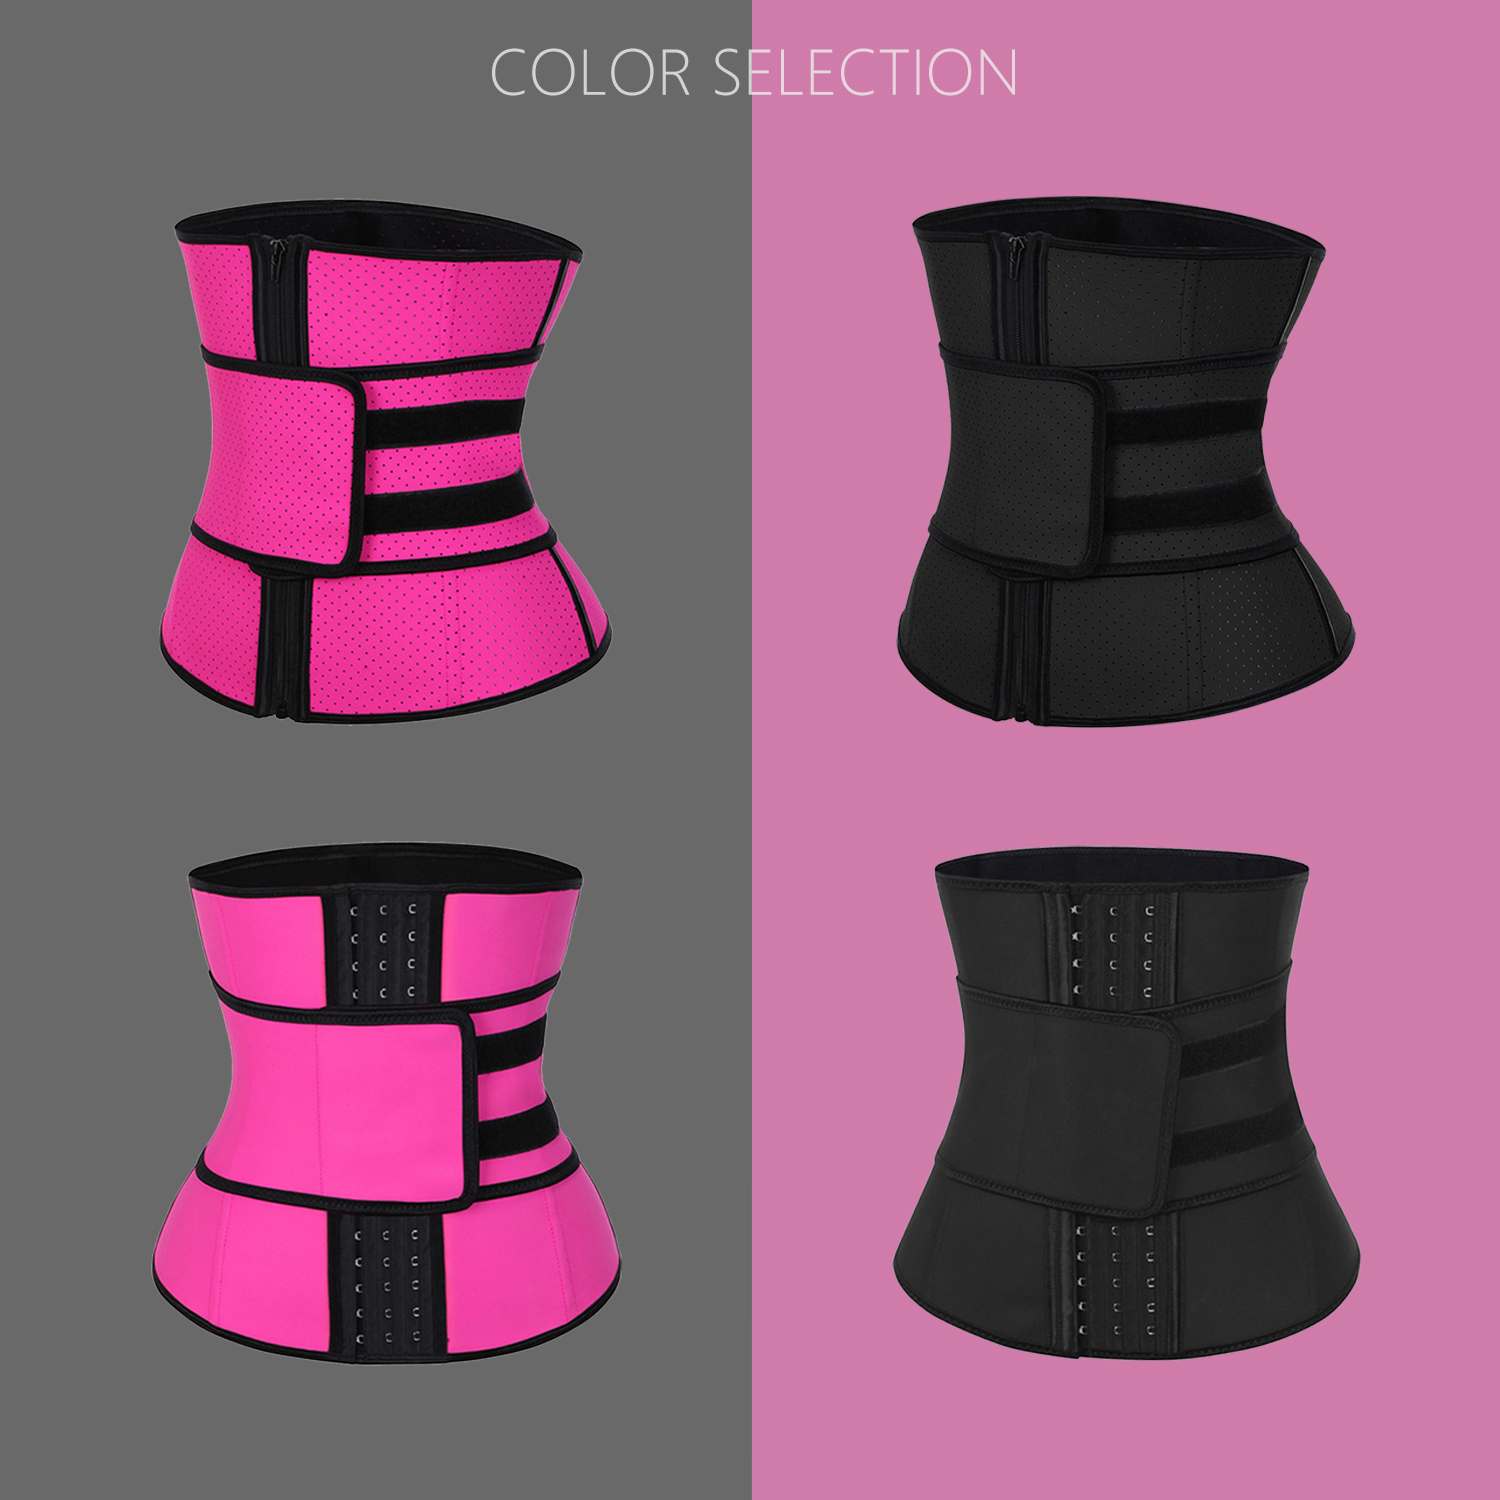 Image 2 - ROEGADYN Loss Sweat Band Wrap Fat Sports Waist Trimmer Belt For Women Waist Trimmer Breathable Fitness CrossFit Waist SupportWaist Support   -